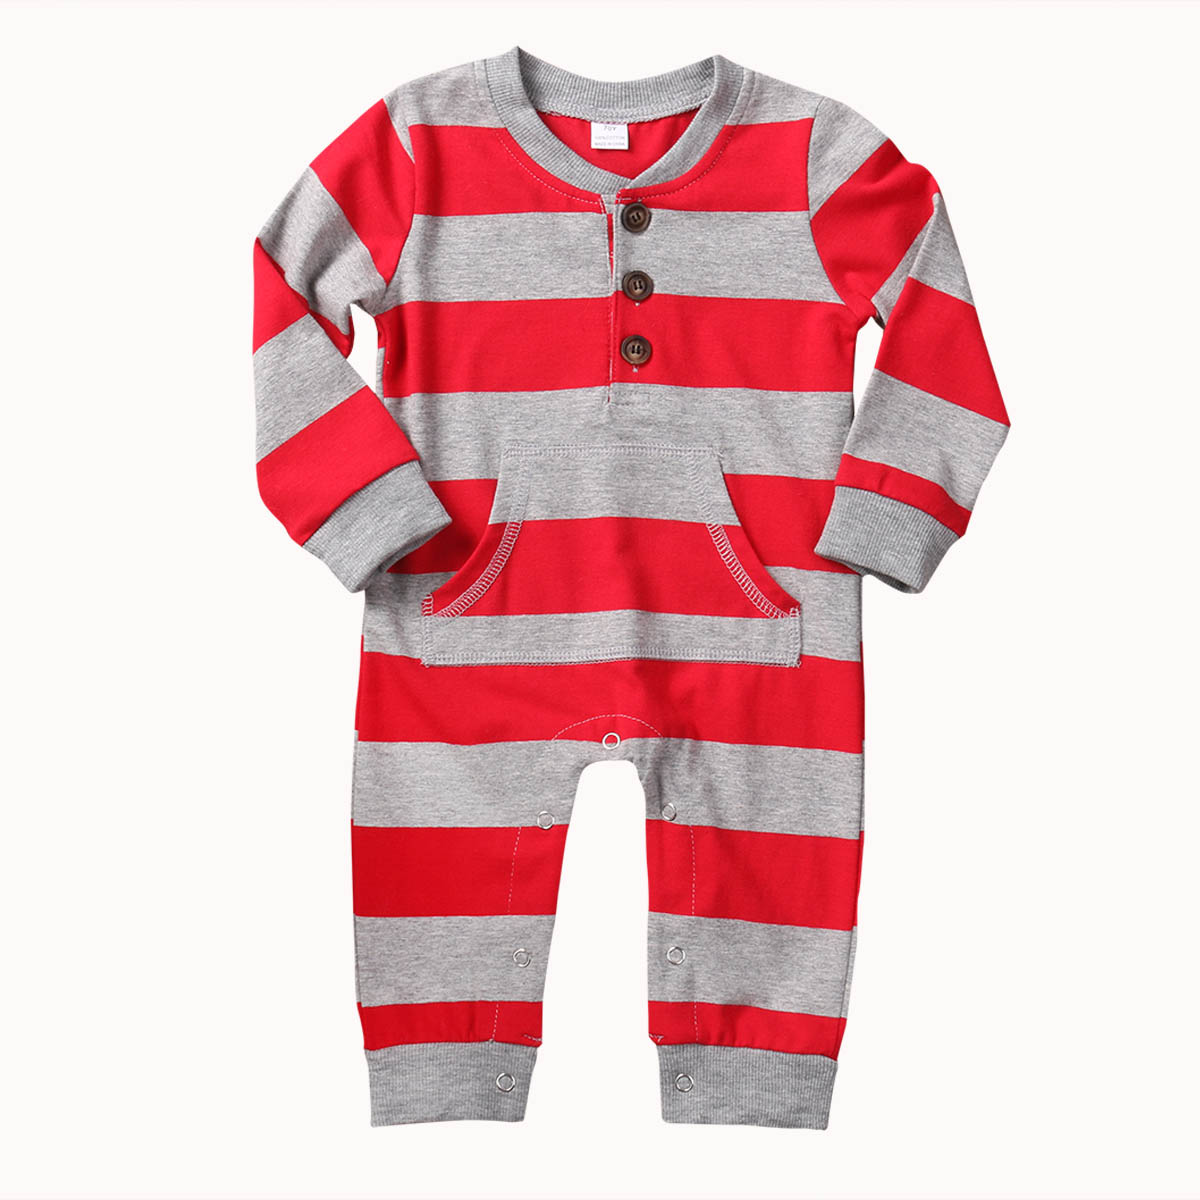 New Style Christmas Cotton Toddler Baby Boy Girls Clothes Long Sleeve Romper With Pocket Playsuit Baby Clothing